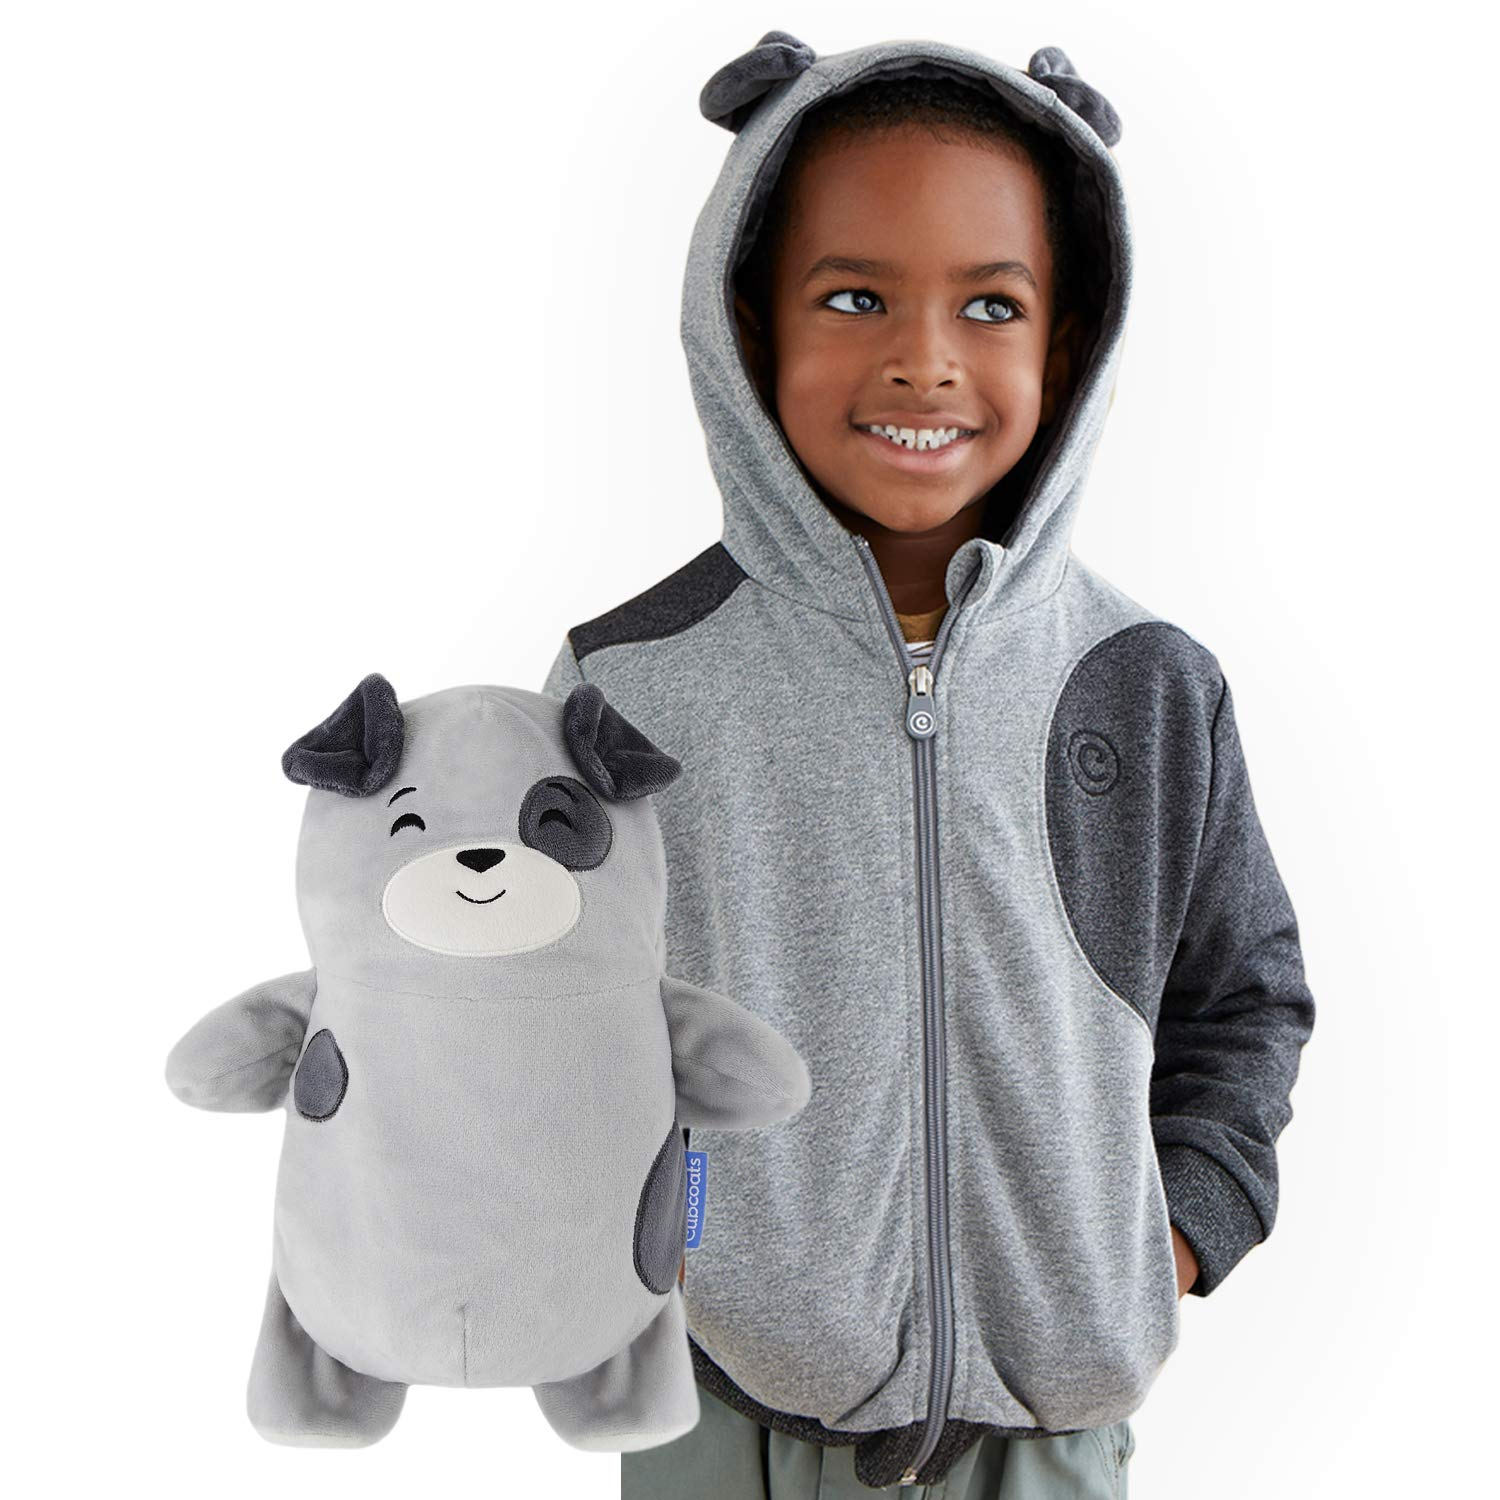 Cubcoats Pimm The Puppy - 2-in-1 Transforming Hoodie & Soft Plushie - Charcoal with Dog Spots